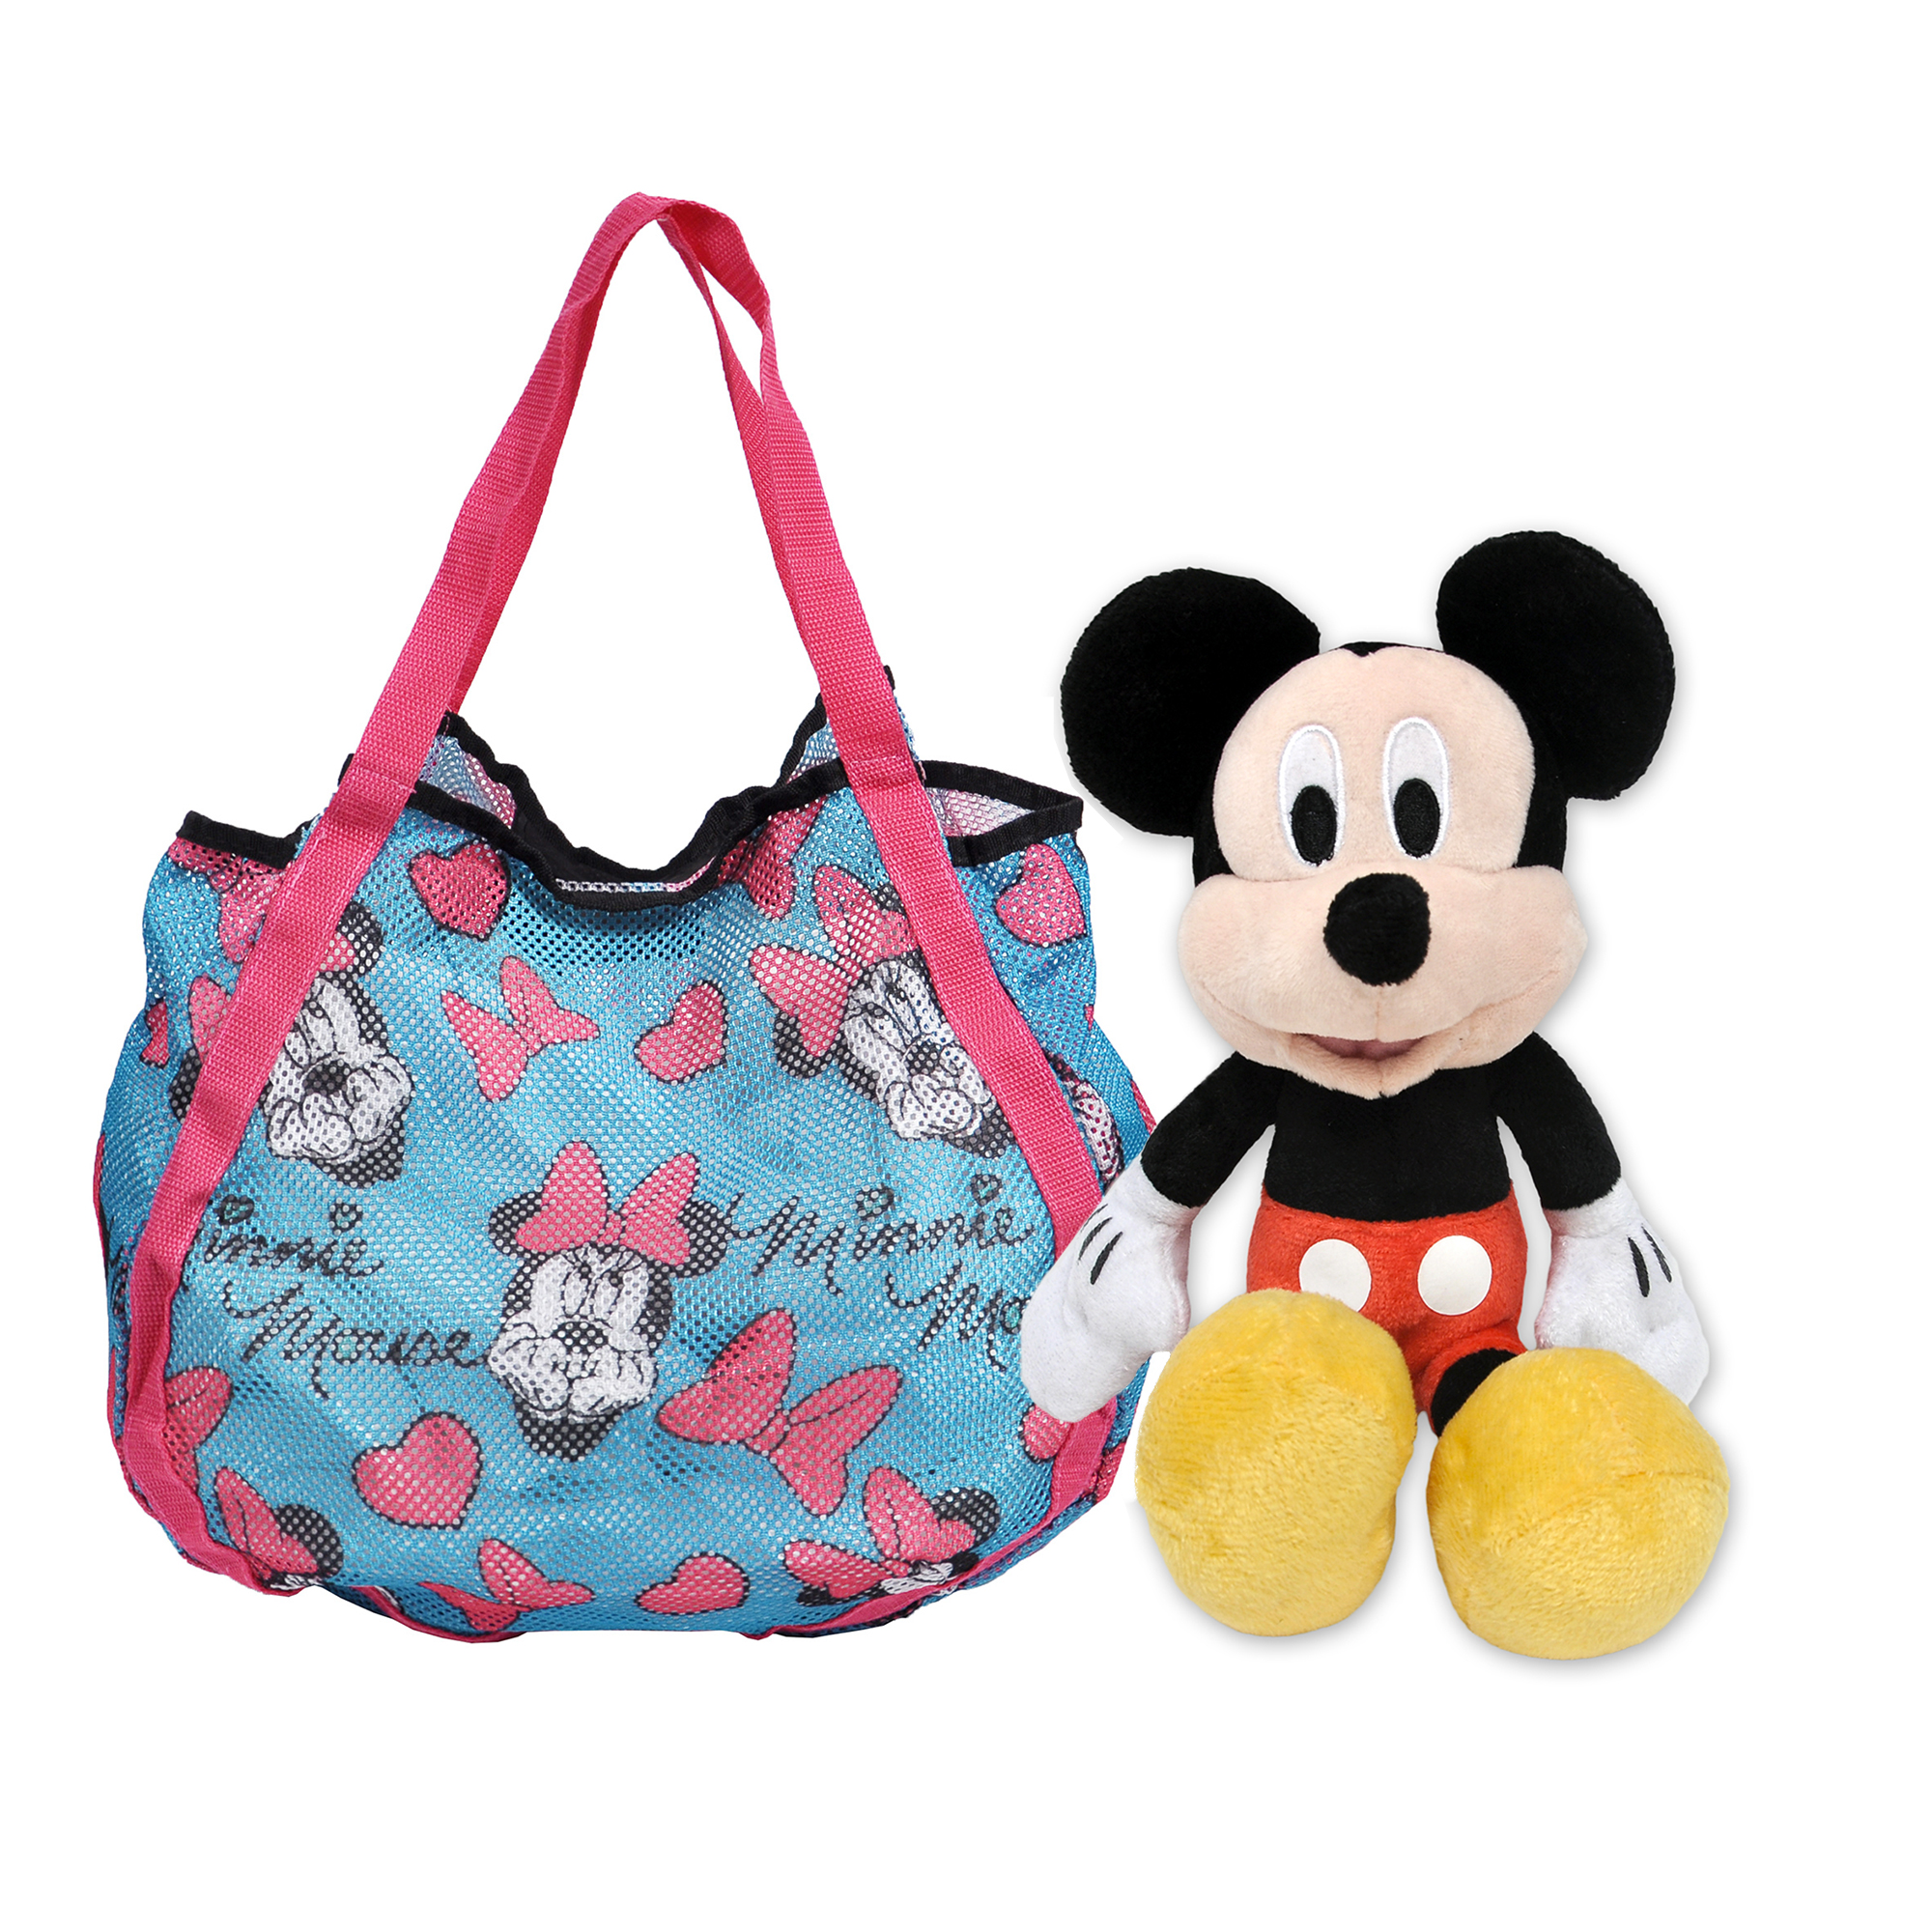 Minnie Mouse Shopping Tote Bag & Mickey Mouse Plush Doll 11""